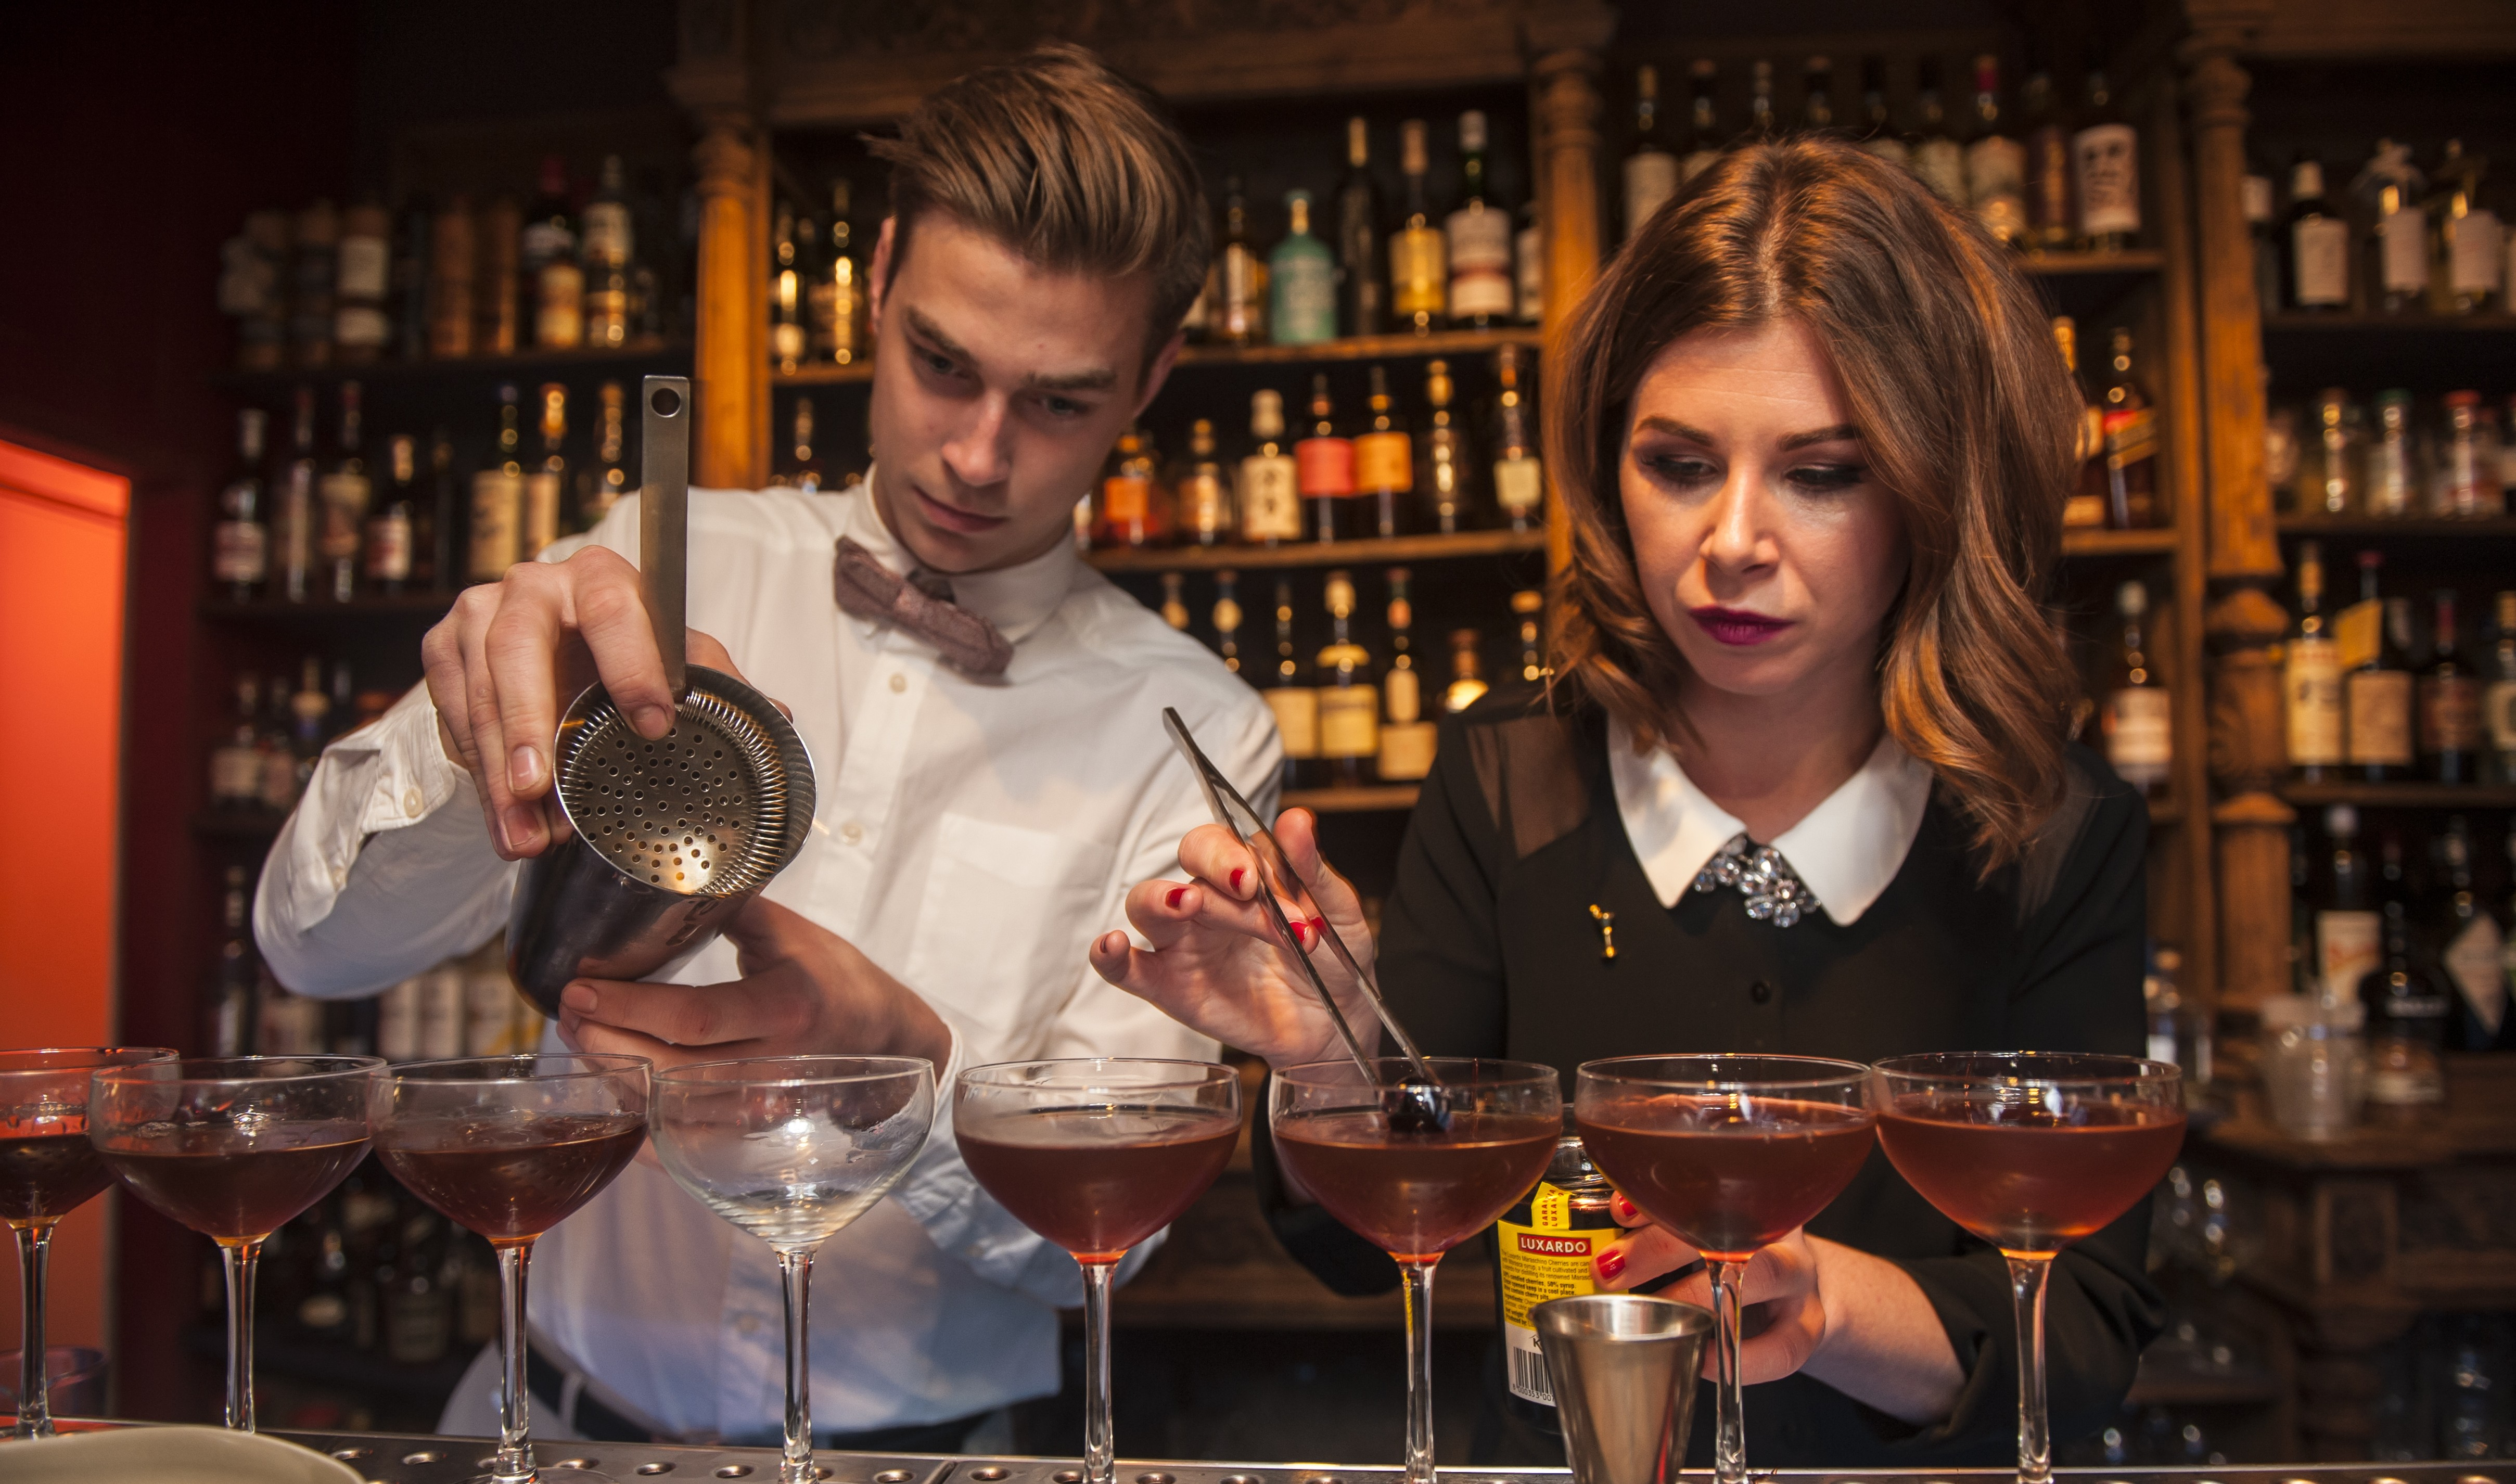 The Pharmacy BarAwards Best Cocktail 2014